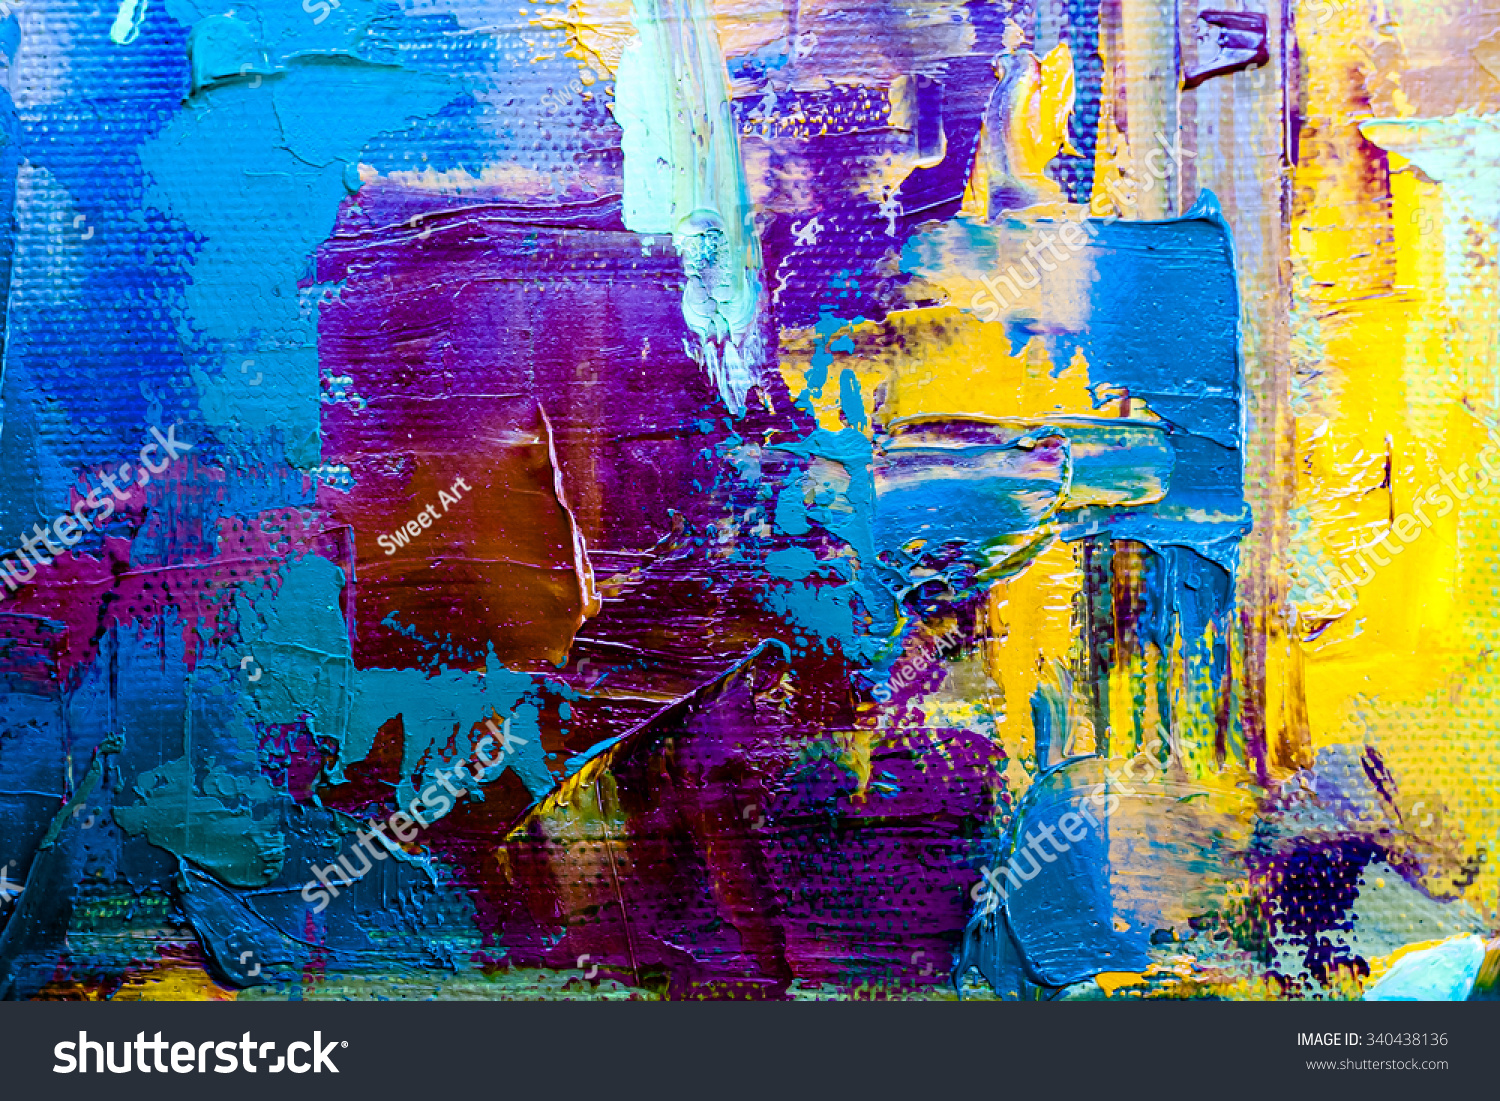 Abstract art background oil painting on stock illustration for Contemporary oil paintings